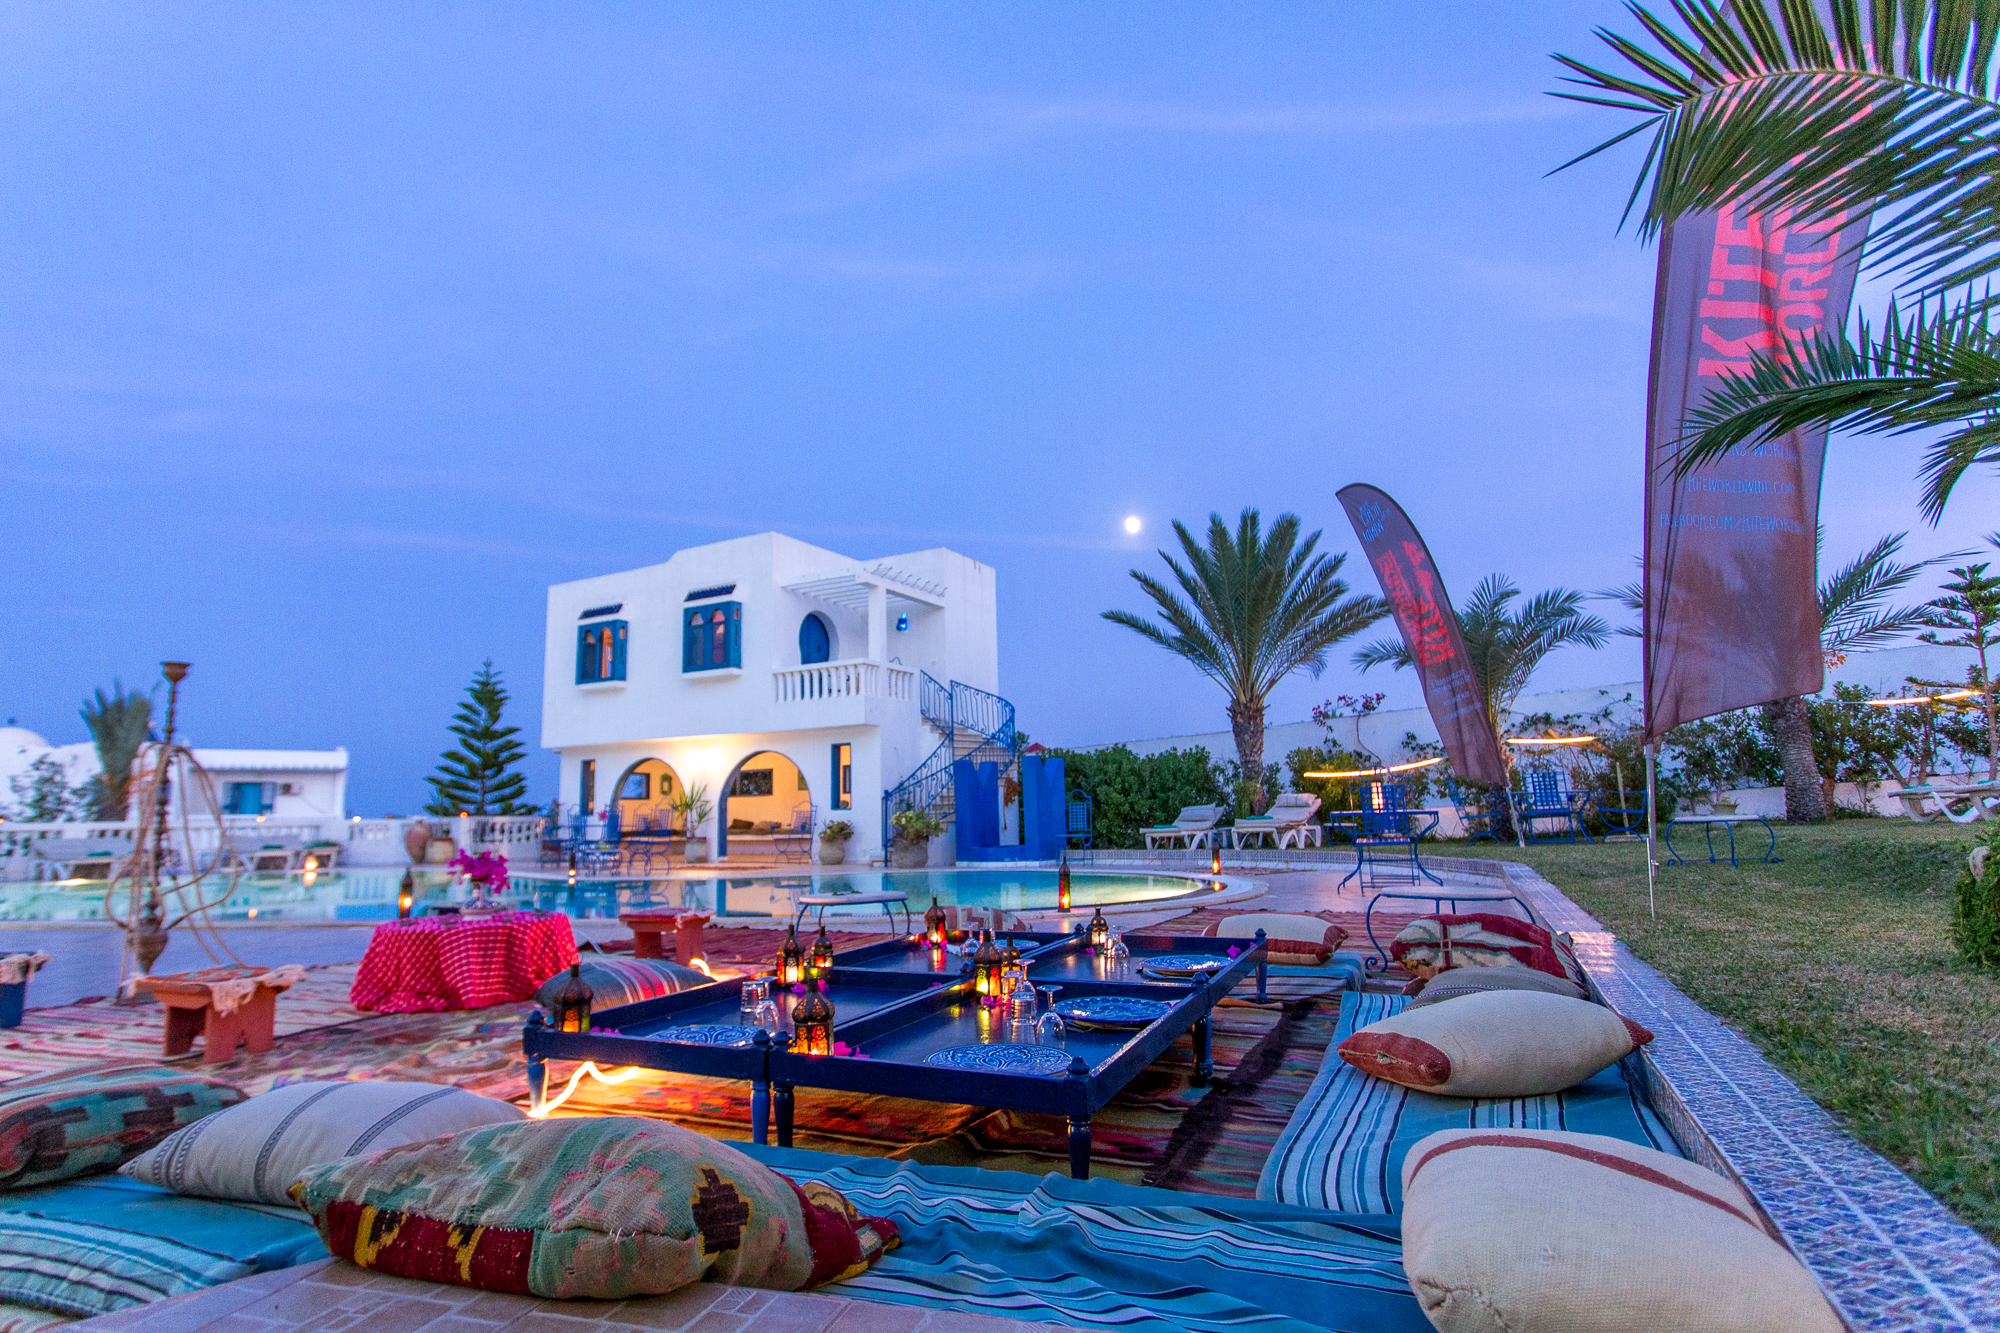 Kite Village Djerba